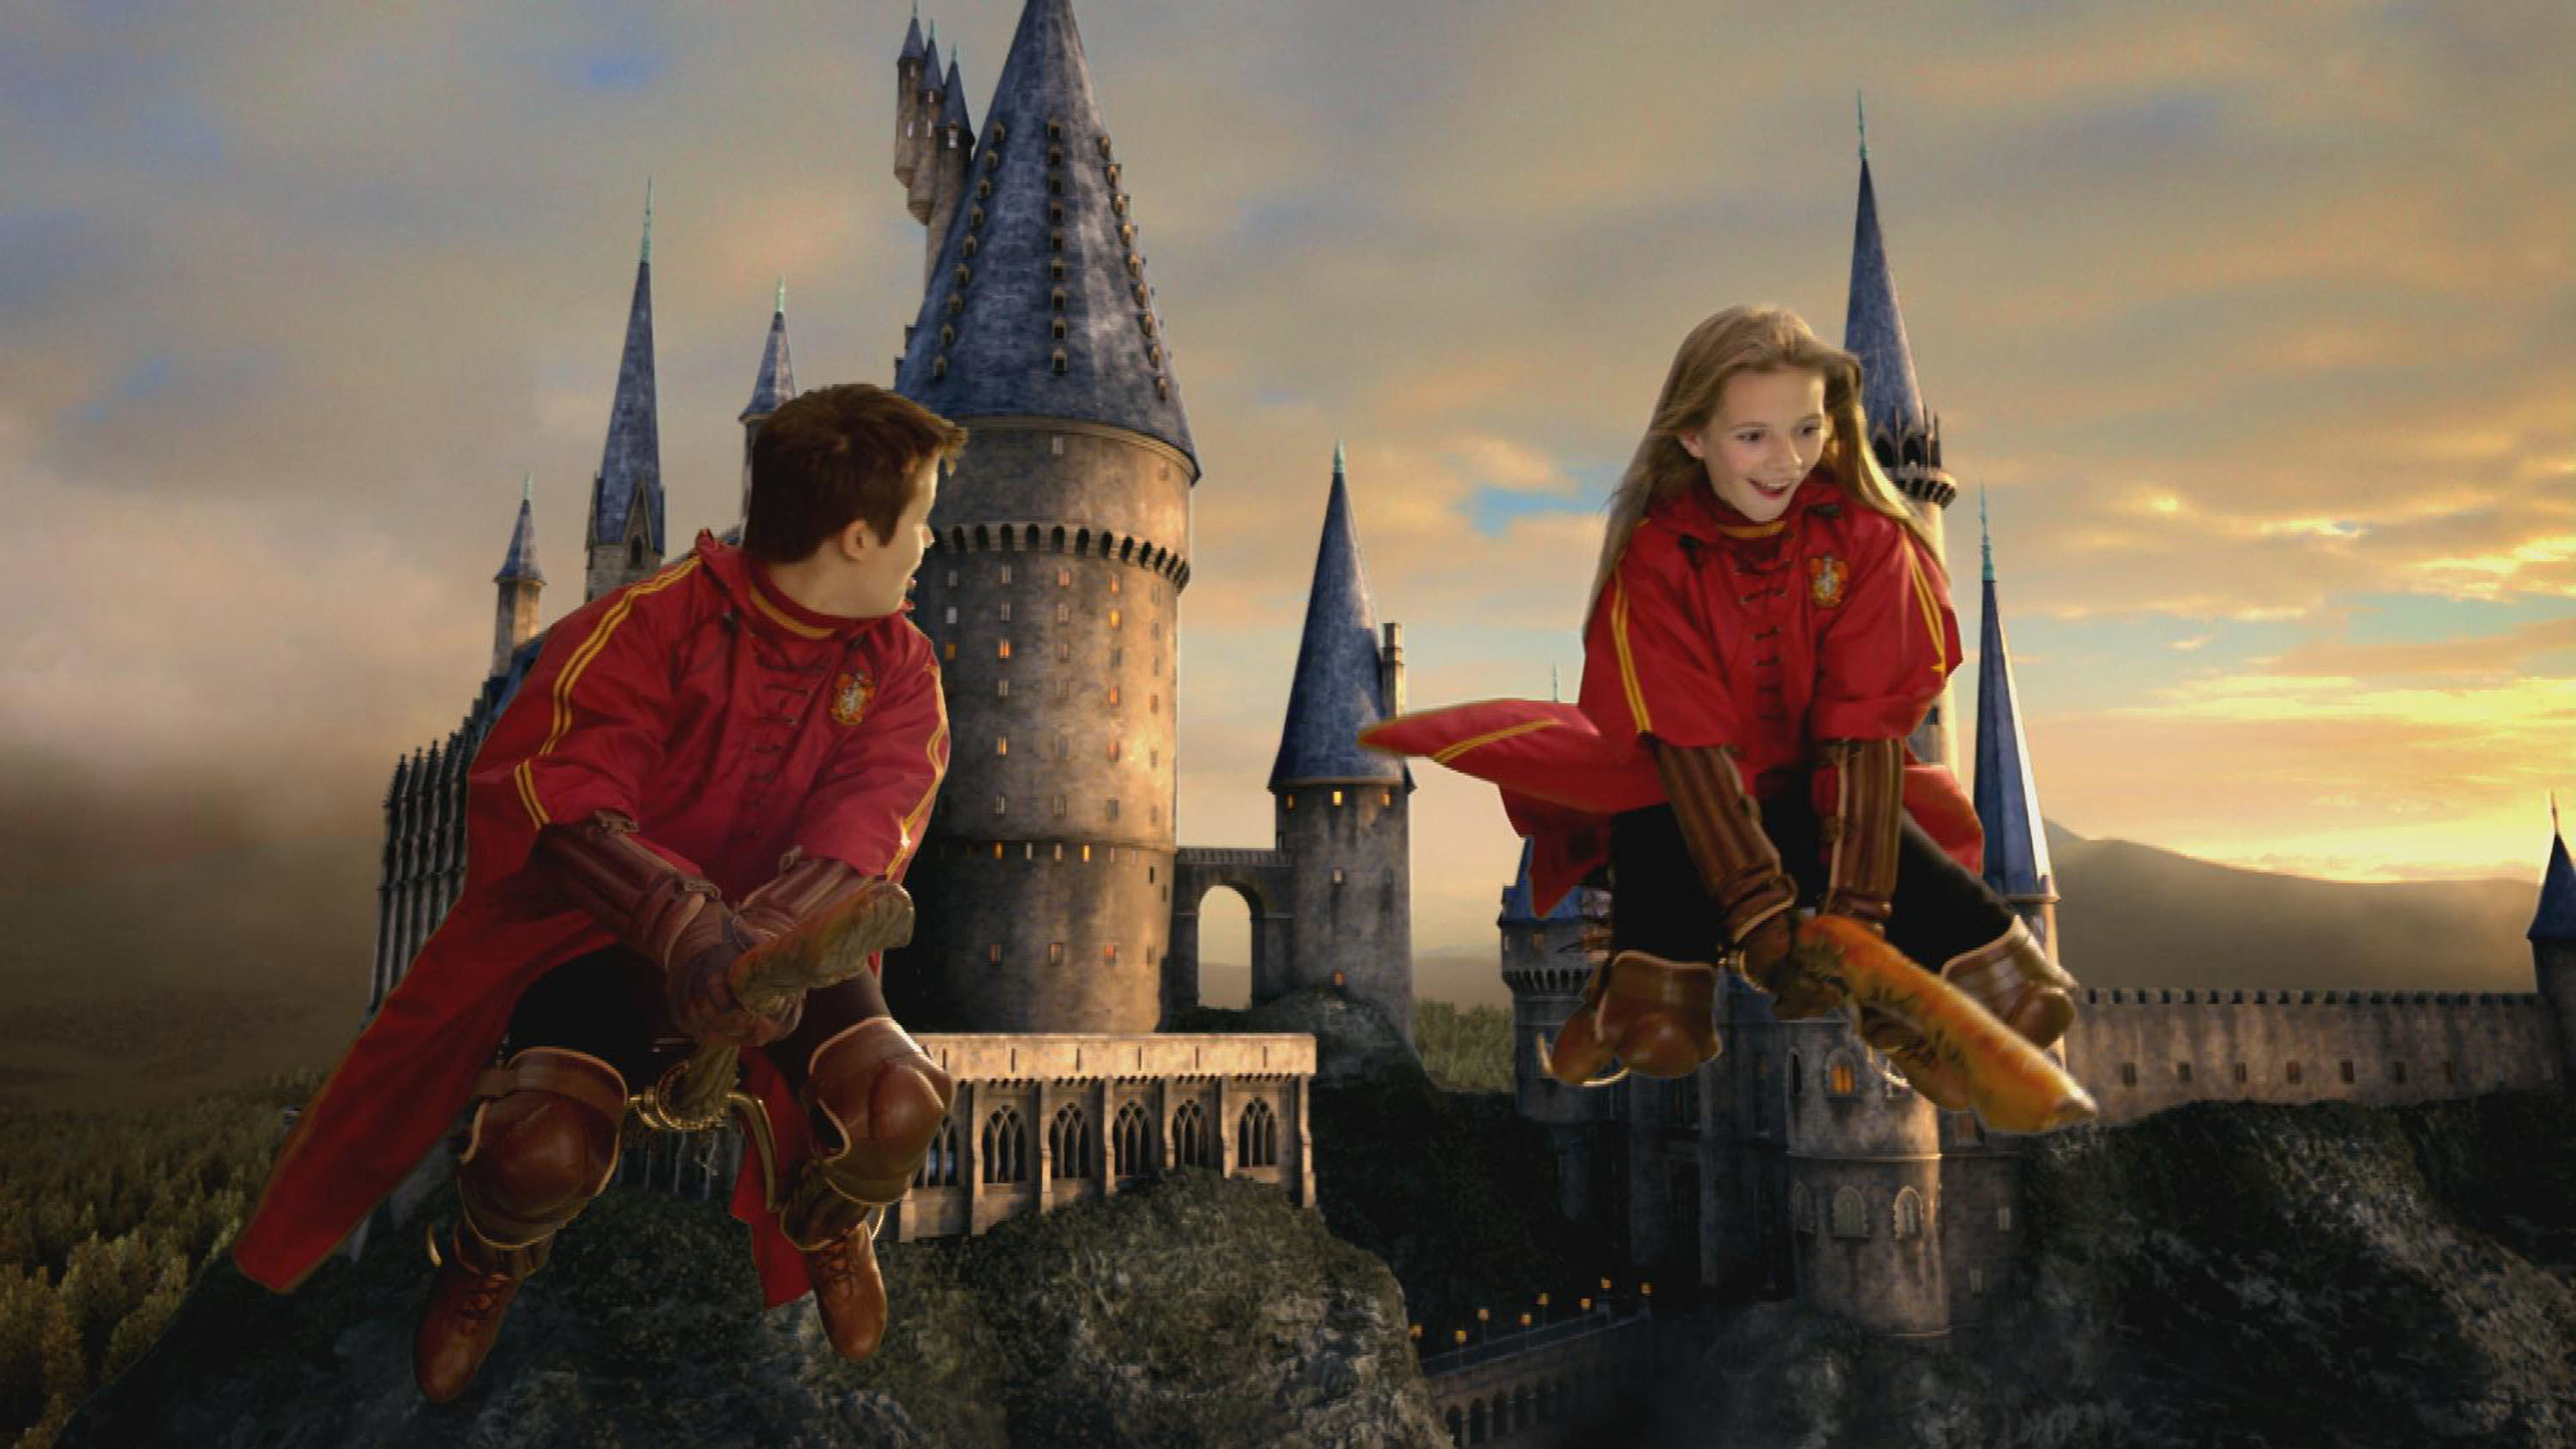 Res: 3003x1689, Flying by Broomstick wallpaper - Click picture for high resolution HD  wallpaper